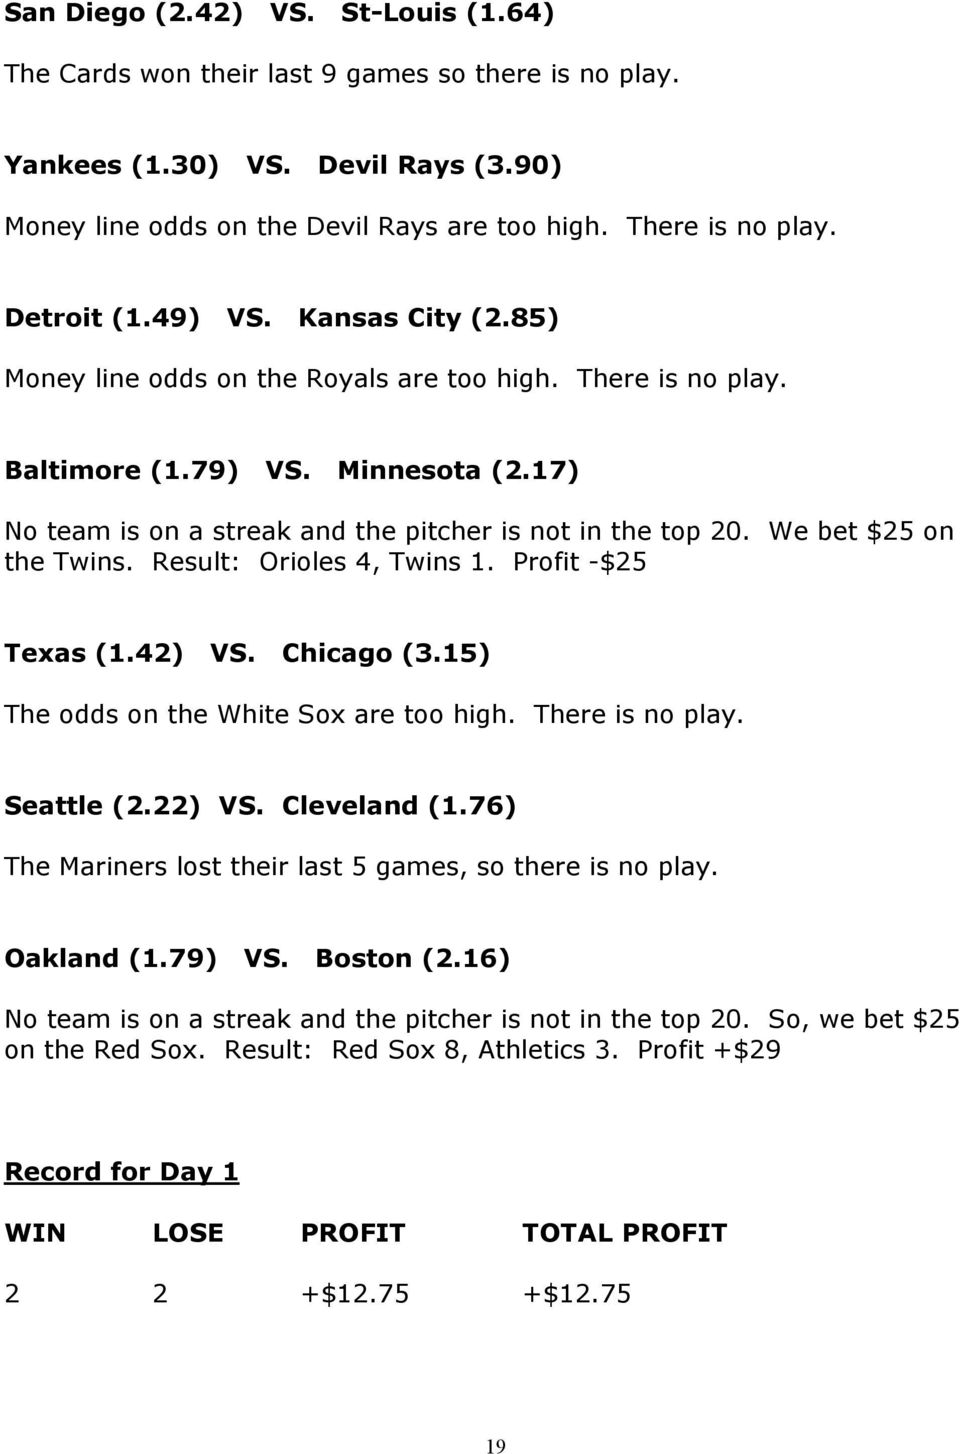 We bet $25 on the Twins. Result: Orioles 4, Twins 1. Profit -$25 Texas (1.42) VS. Chicago (3.15) The odds on the White Sox are too high. There is no play. Seattle (2.22) VS. Cleveland (1.